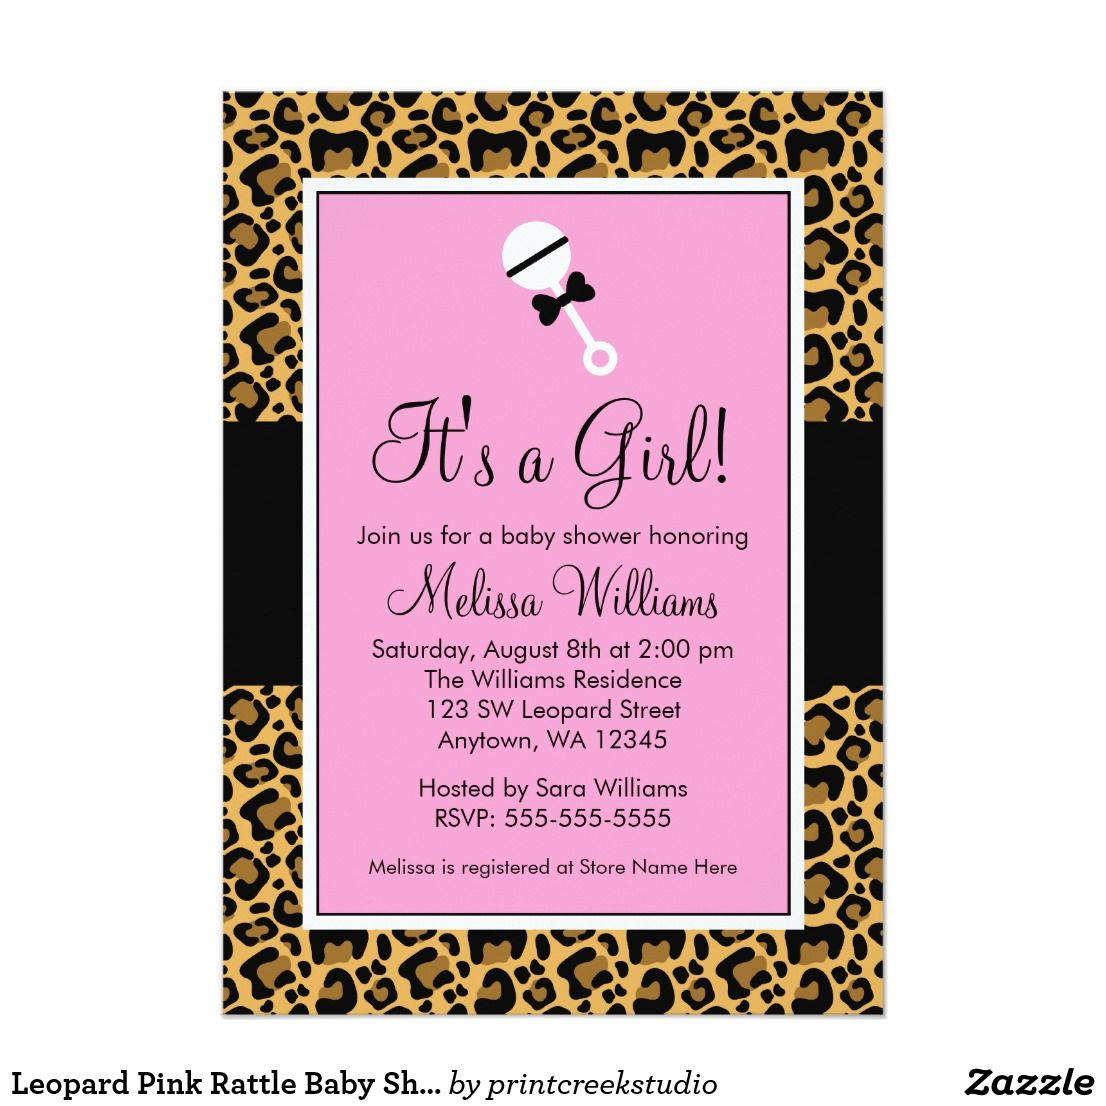 Leopard Pink Rattle Baby Shower Invitations | Fun baby, Chic baby ...